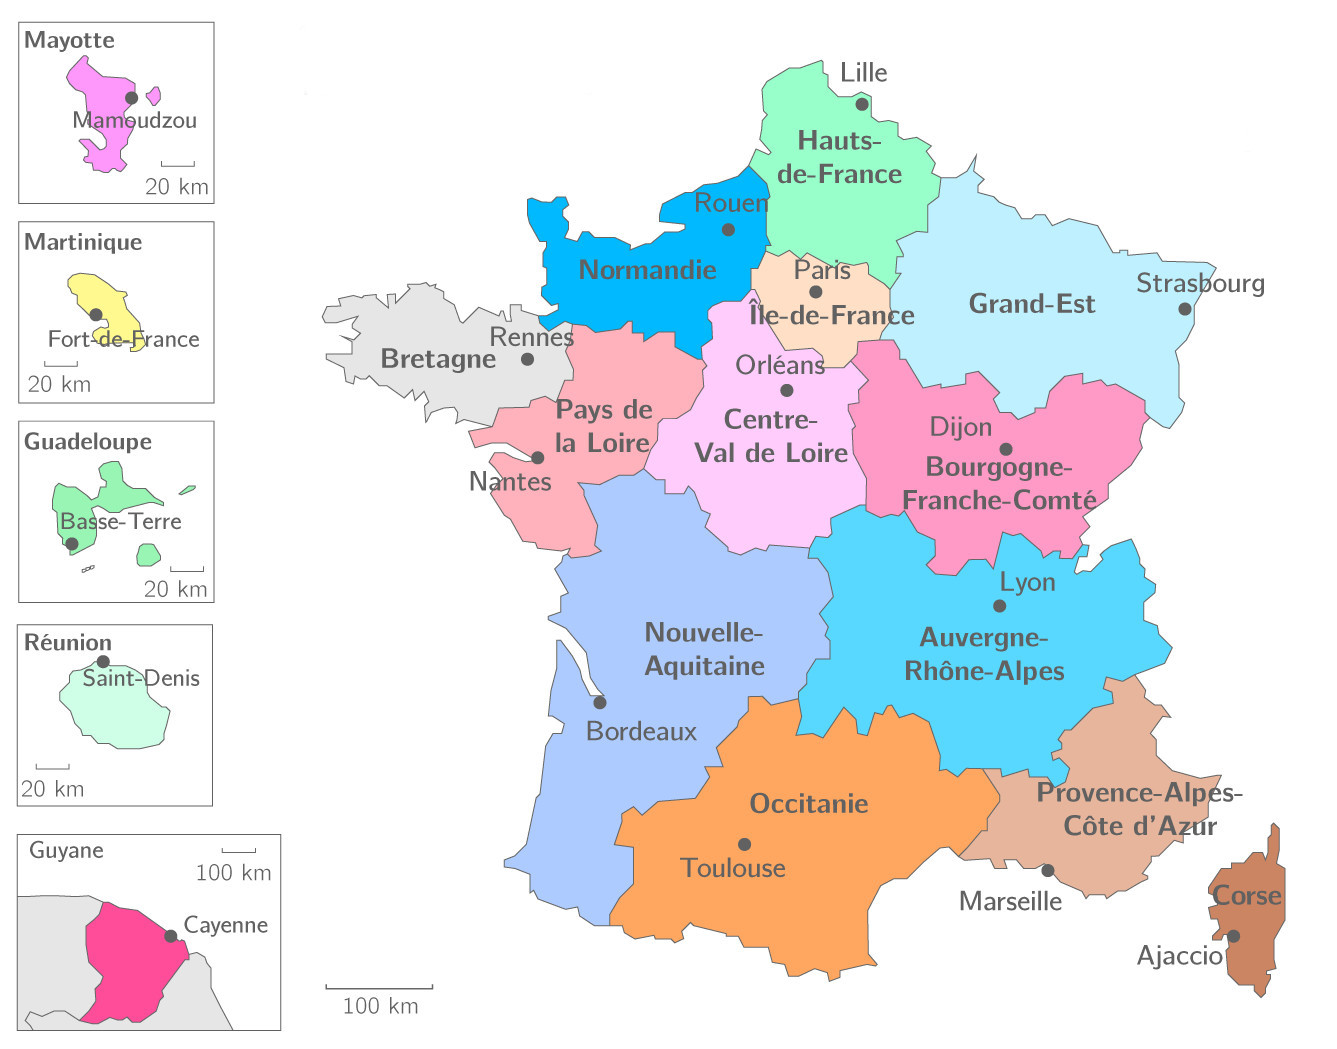 Carte De France Bourgogne Franche Comte.Liste Des Regions Francaises Informations Officielles 2019